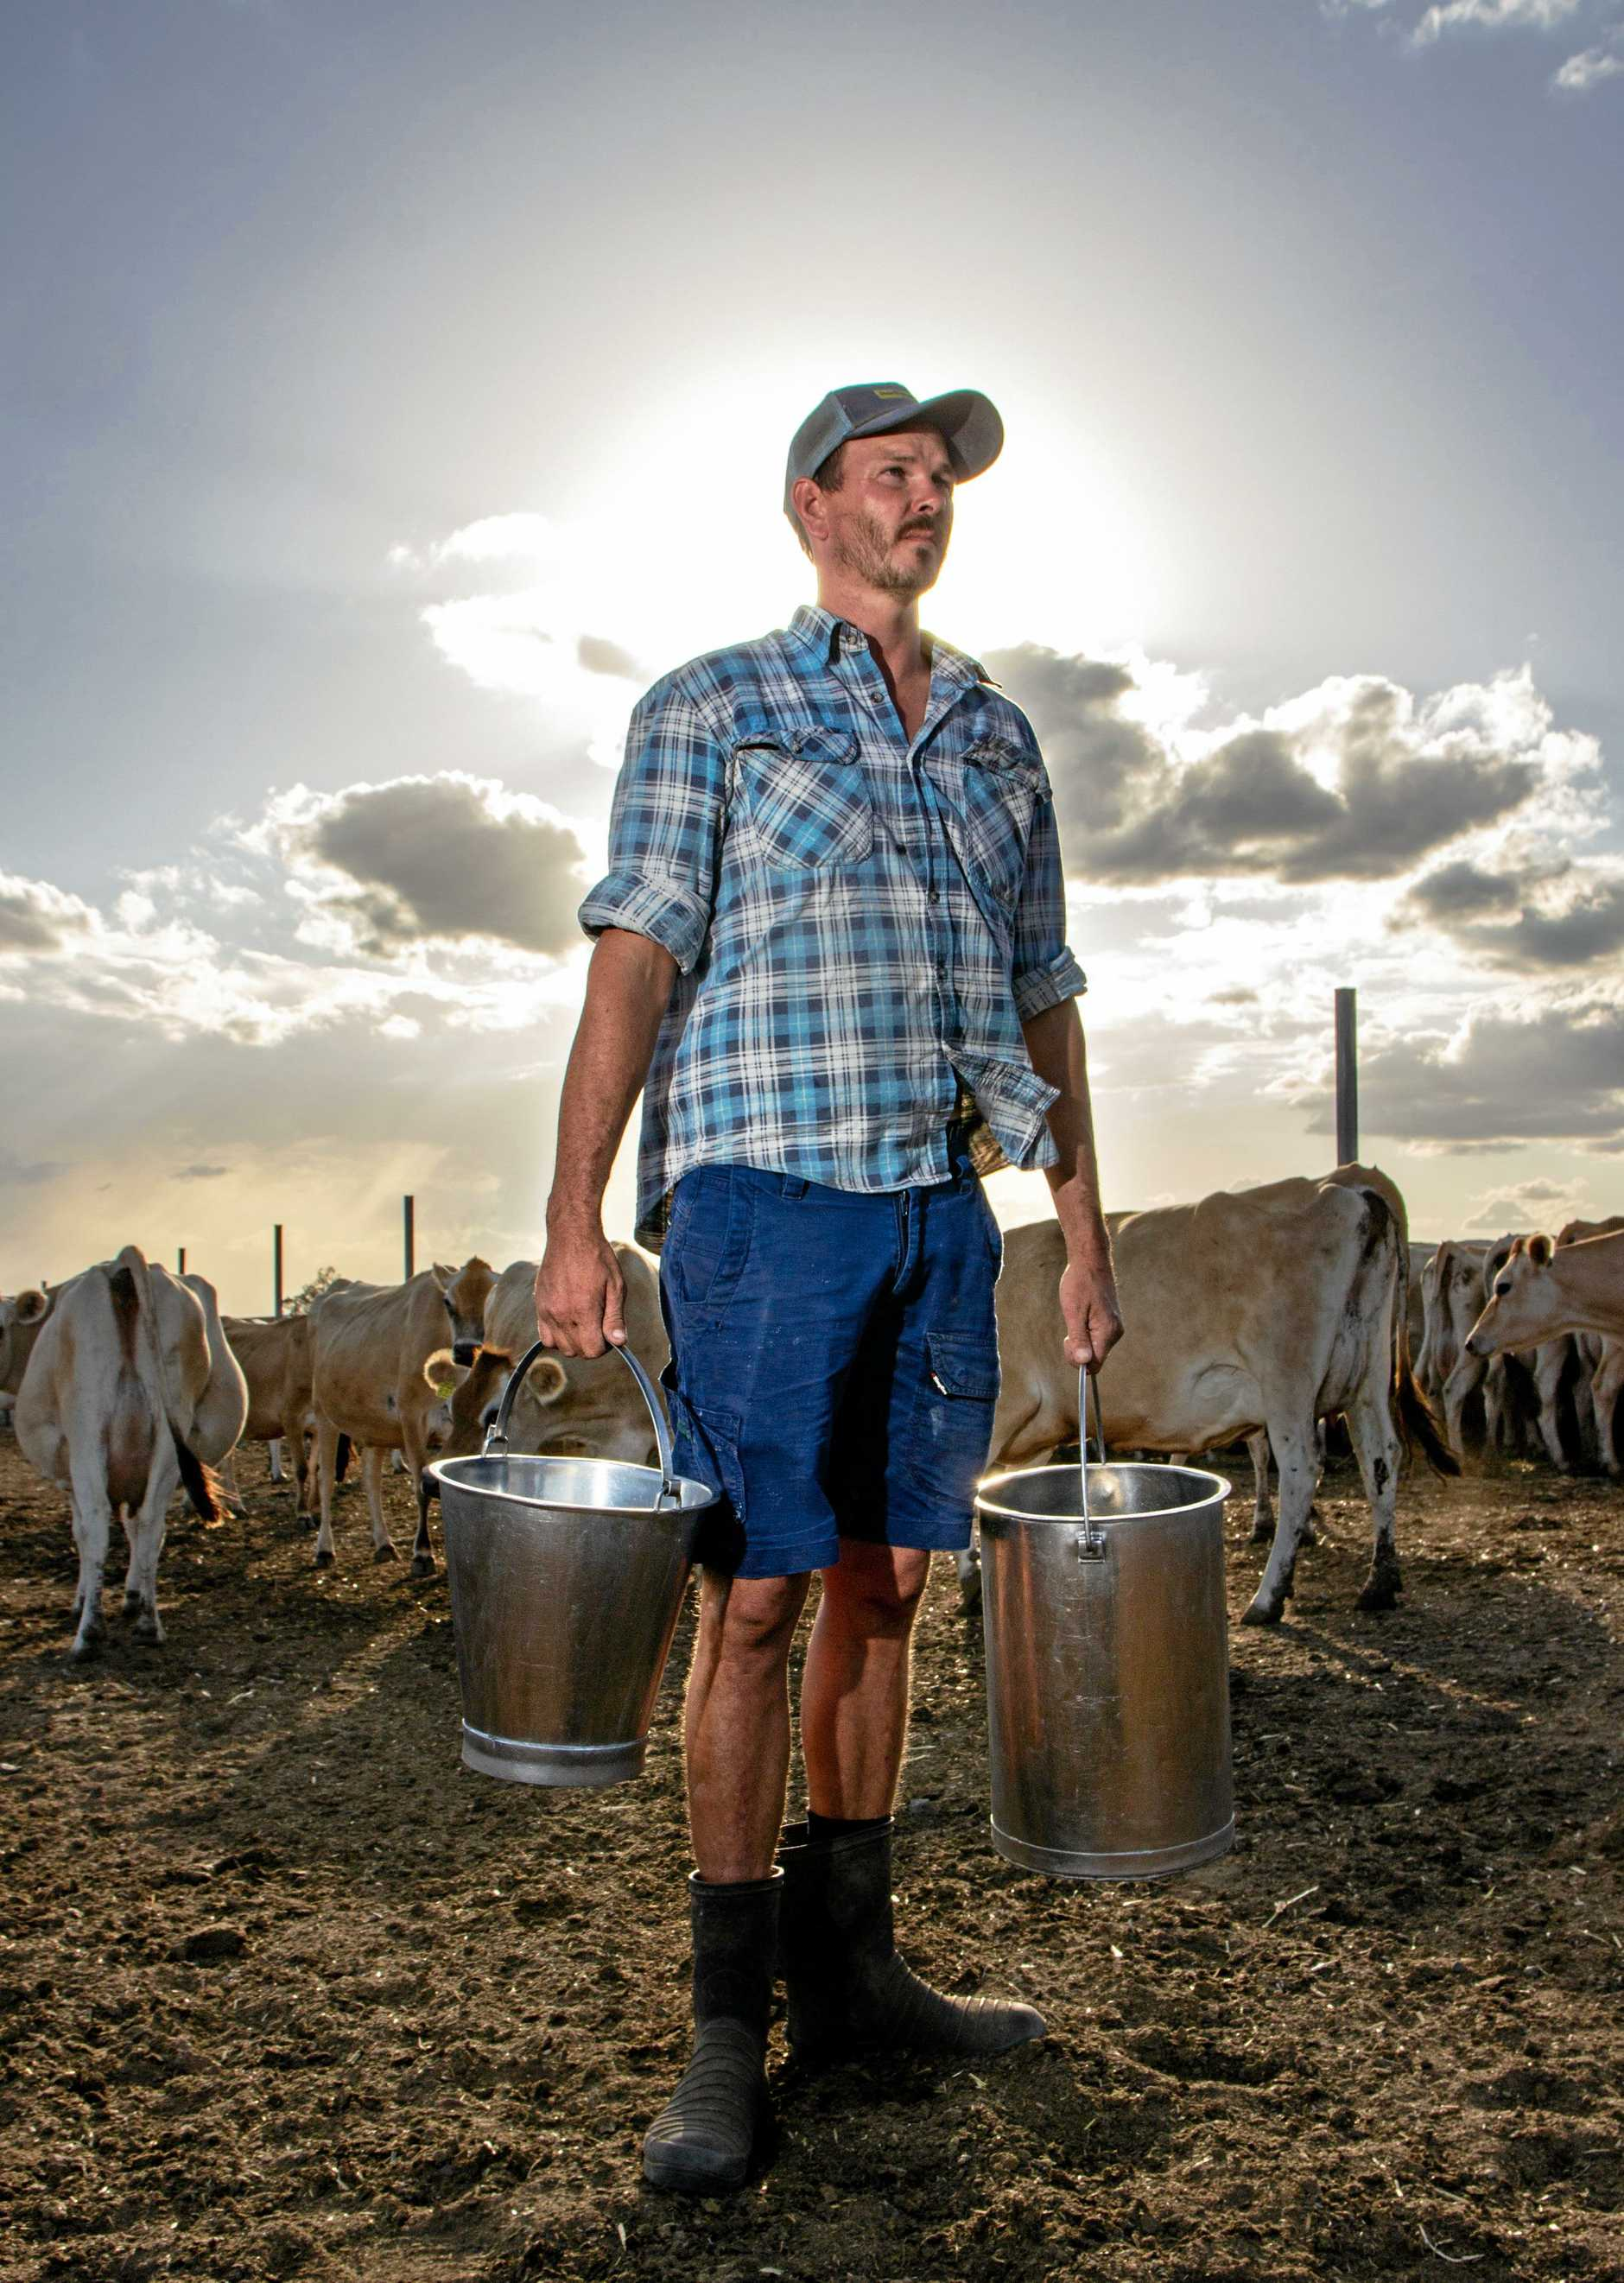 After four generations farming dairy, Richard Peterkin and his family have tragically decided to leave the industry.